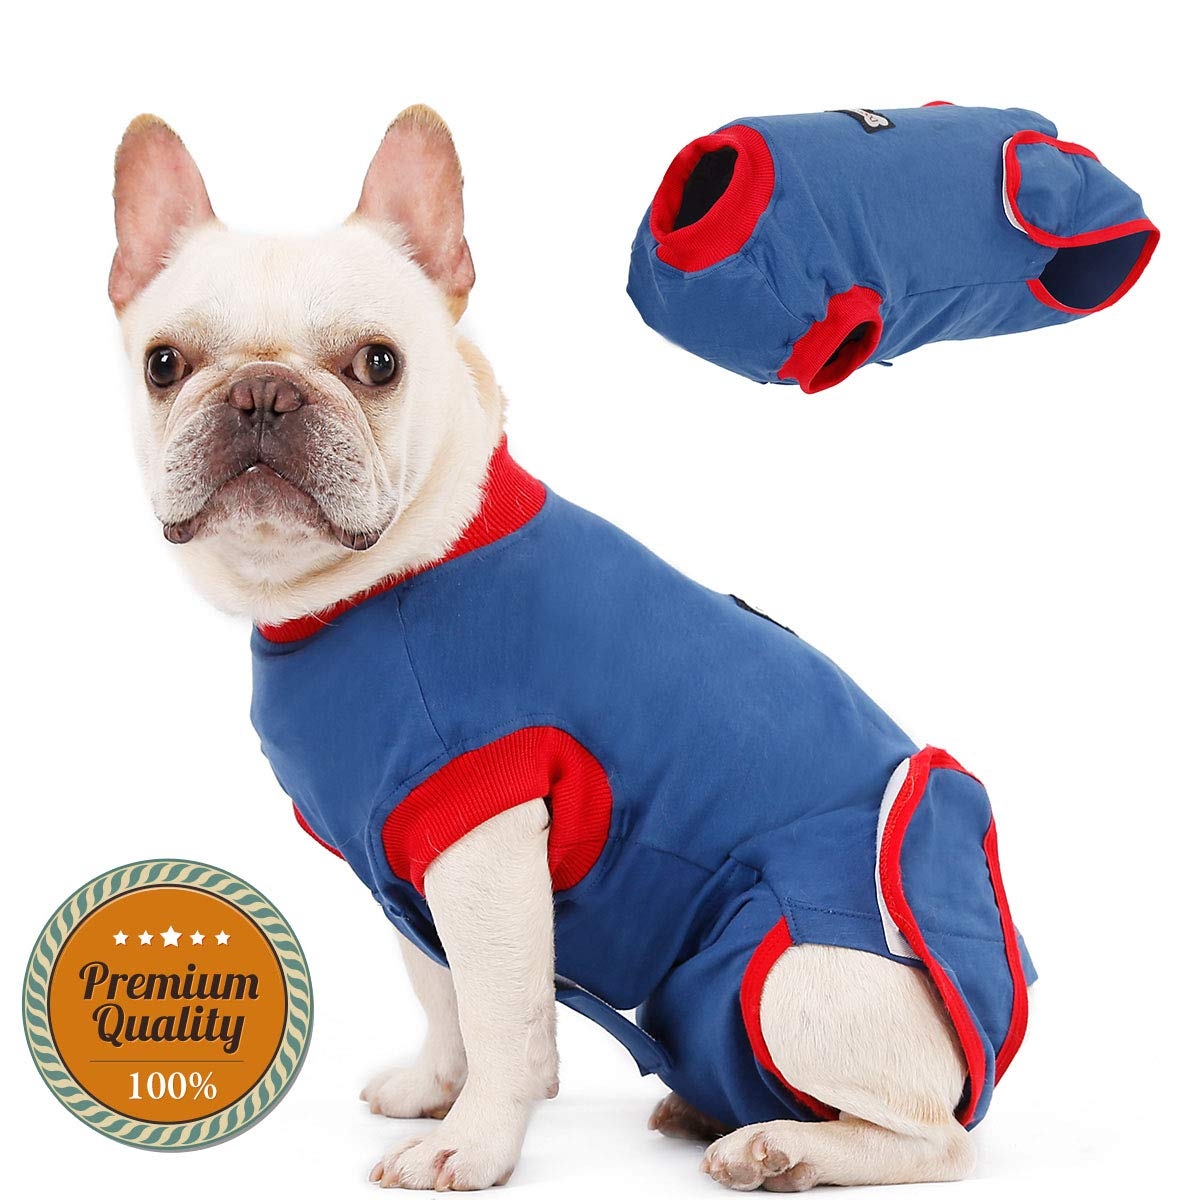 Briday Medical Pet Clothing & Professional Recovery Suit for Dog, E-Collar Alternative Anti-Licking for Post Surgery, Wounds,Skin Diseases and Bandages by Briday